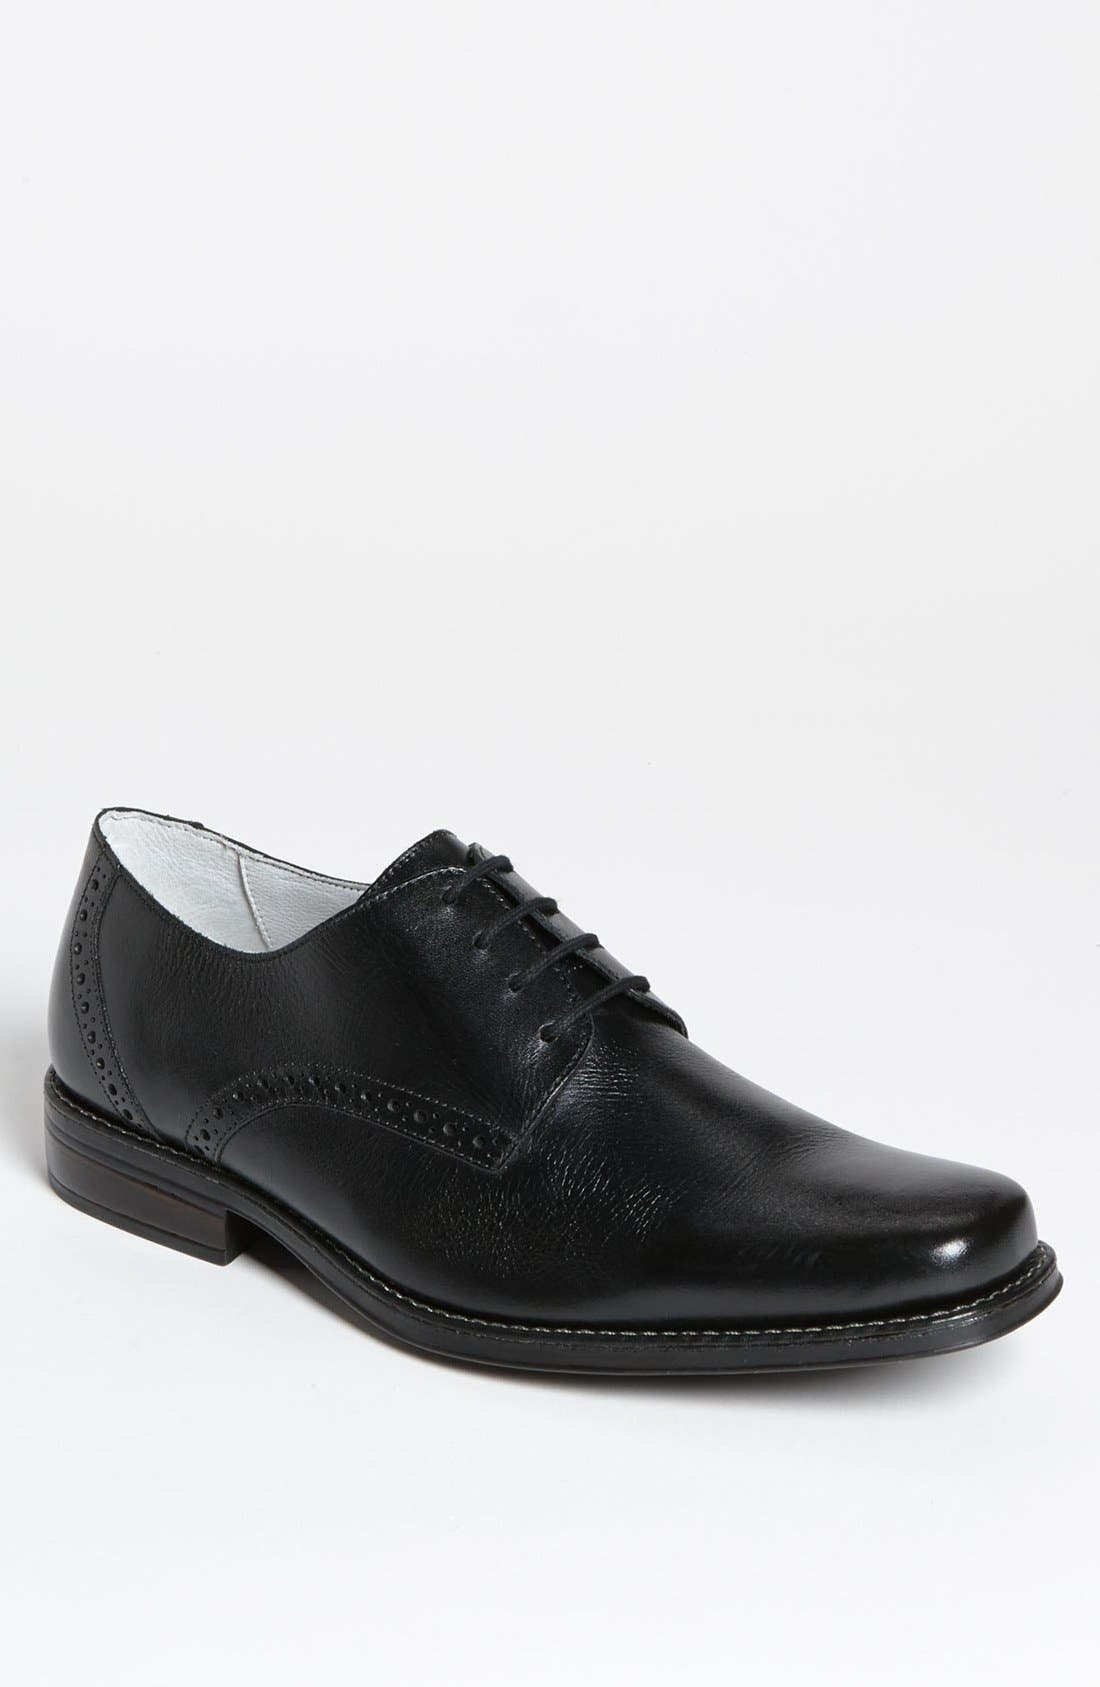 Alternate Image 1 Selected - Sandro Moscoloni 'Yale' Plain Toe Derby